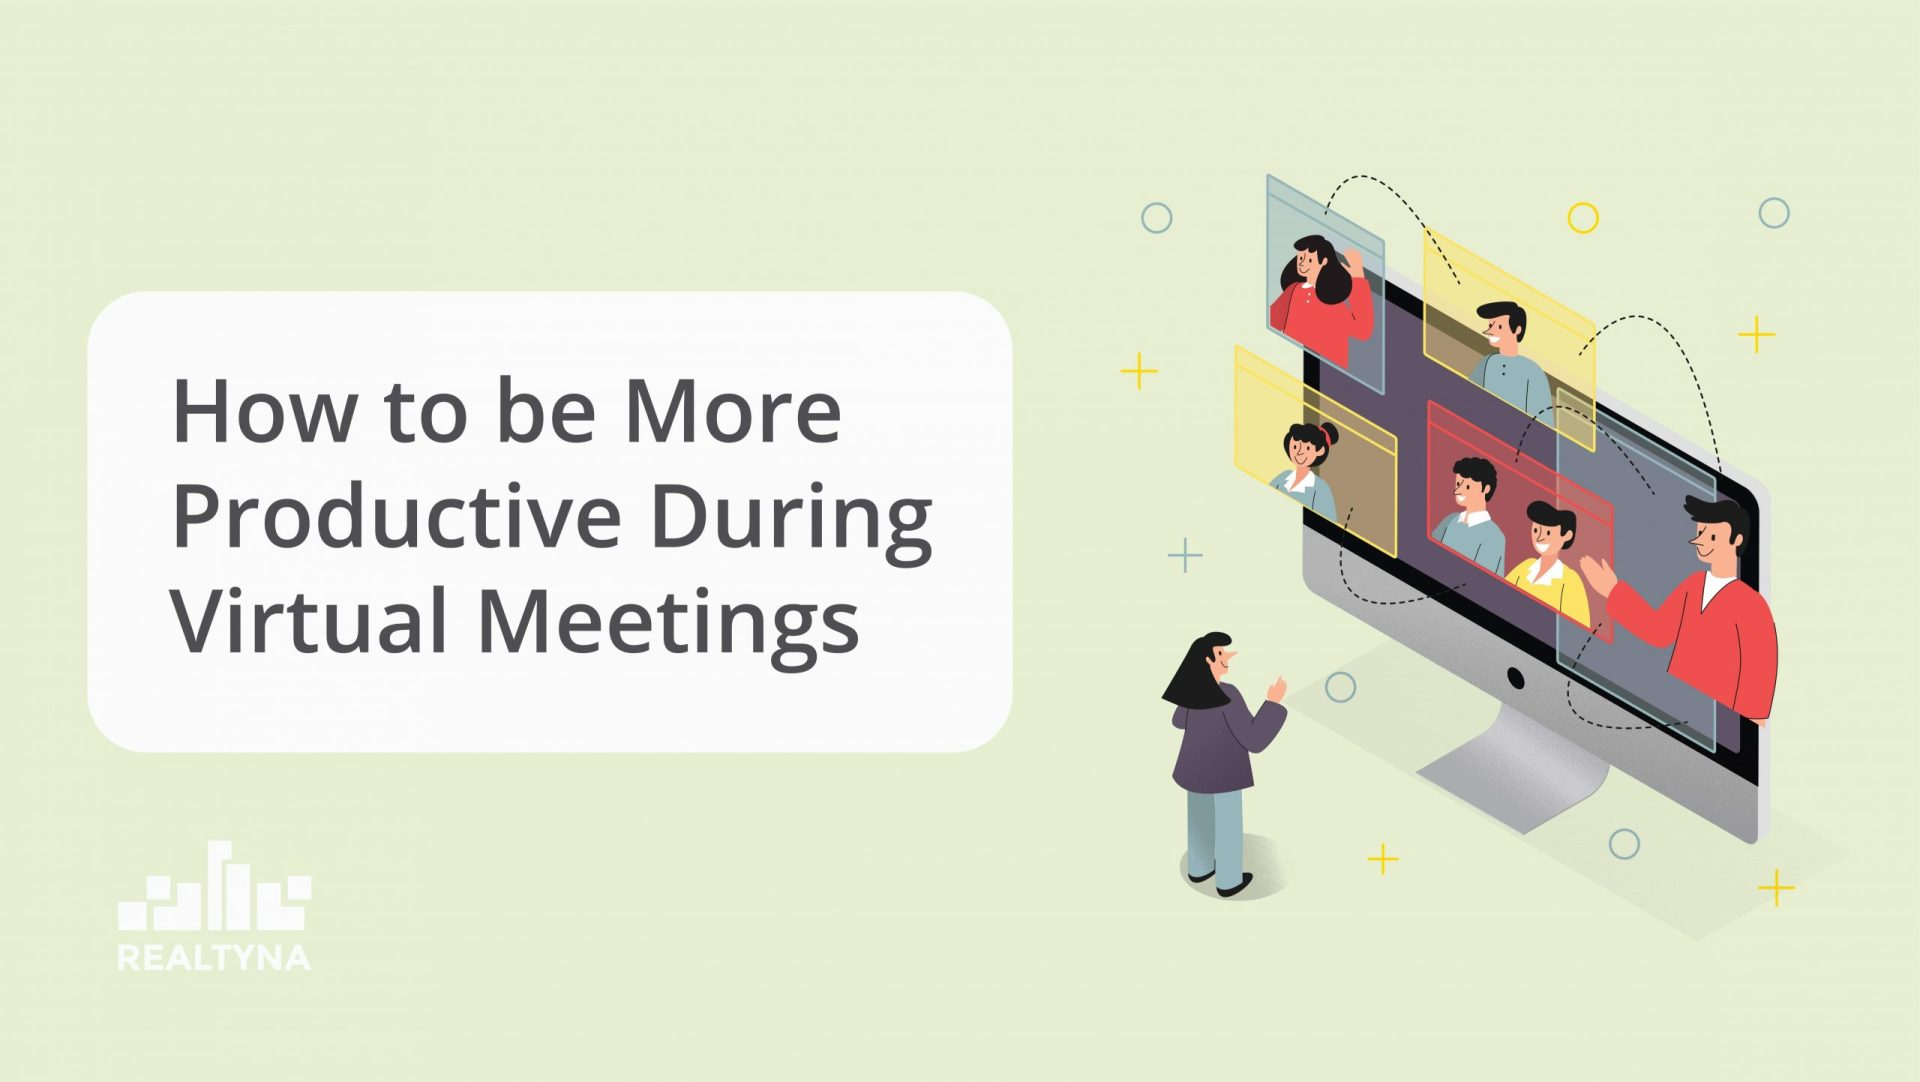 How to be More Productive During Virtual Meetings